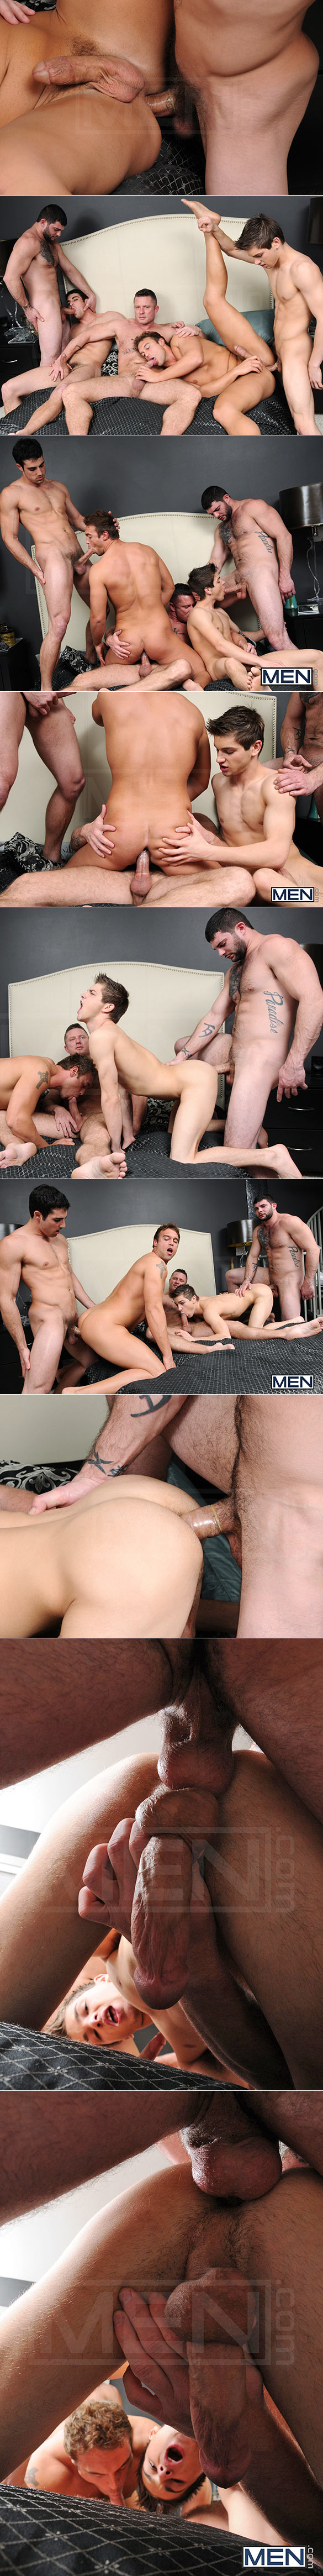 "Men.com: Johnny Rapid, Tony Paradise, Rocco Reed, Charlie Harding and Jack King in ""Tops Only Required"""